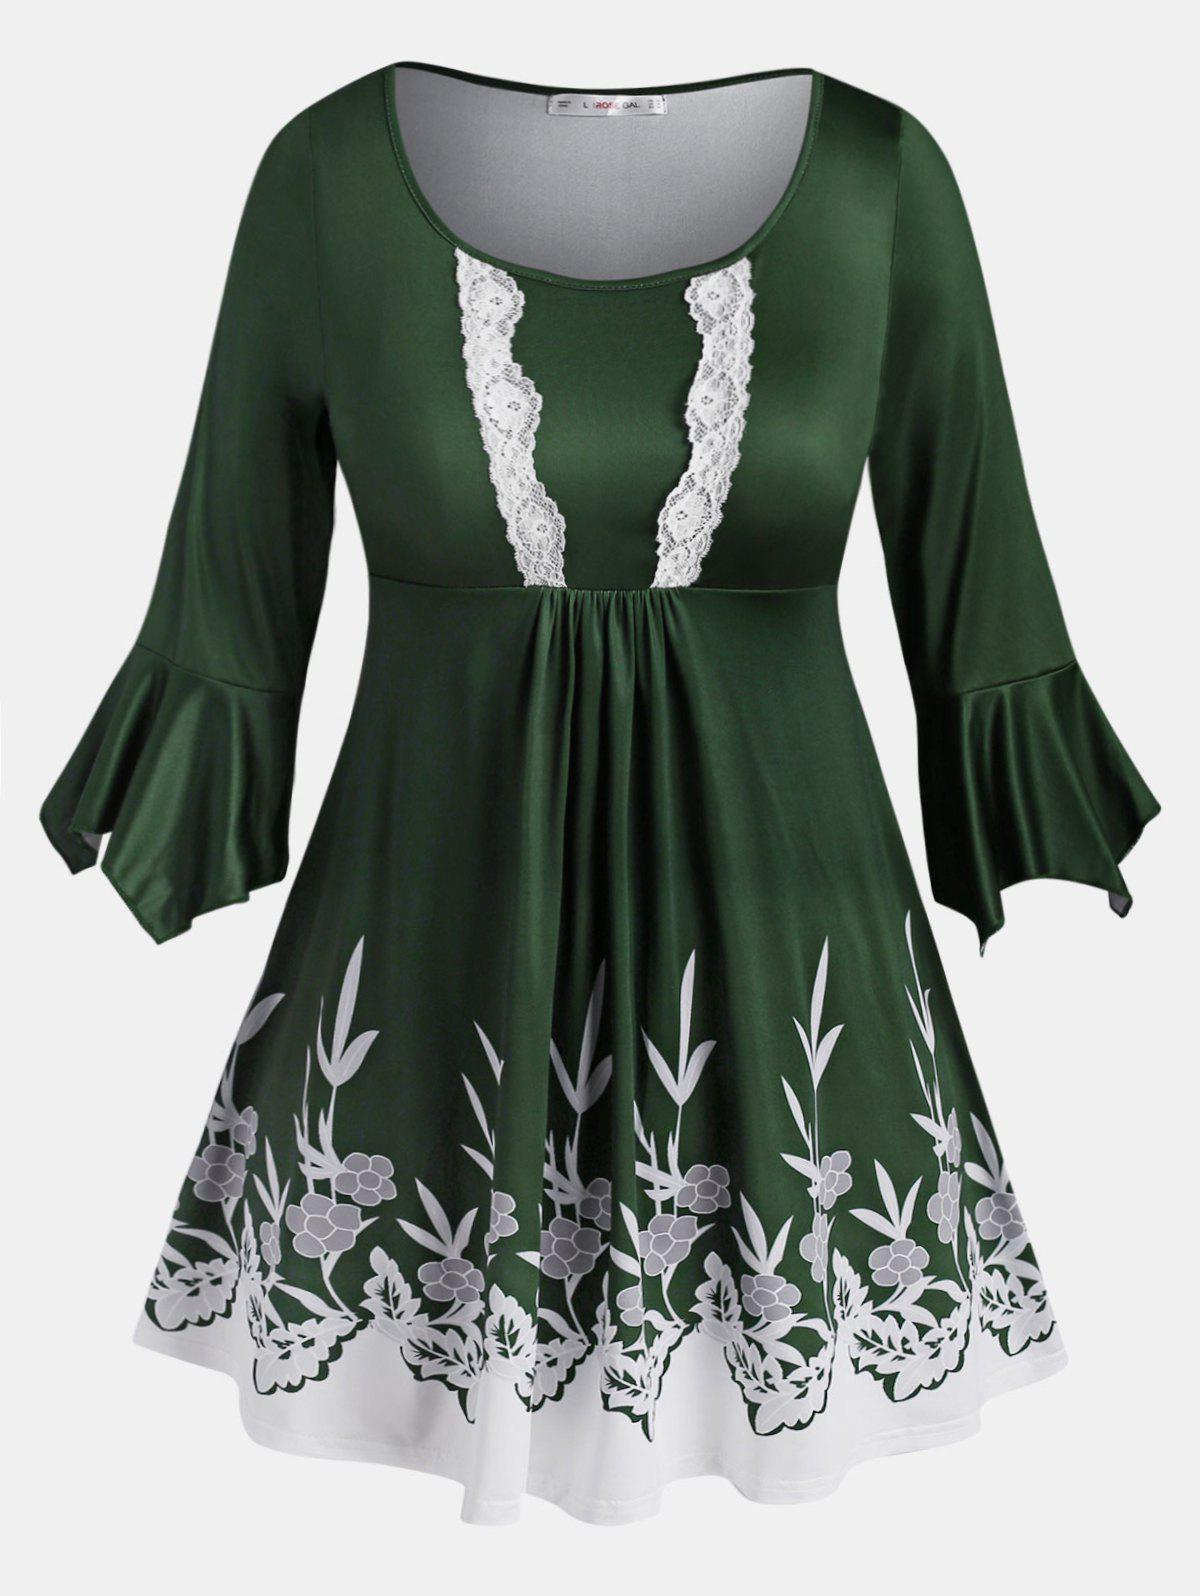 Lace Trim Leaves Floral Flare Sleeve Plus Size Blouse - DEEP GREEN 3X